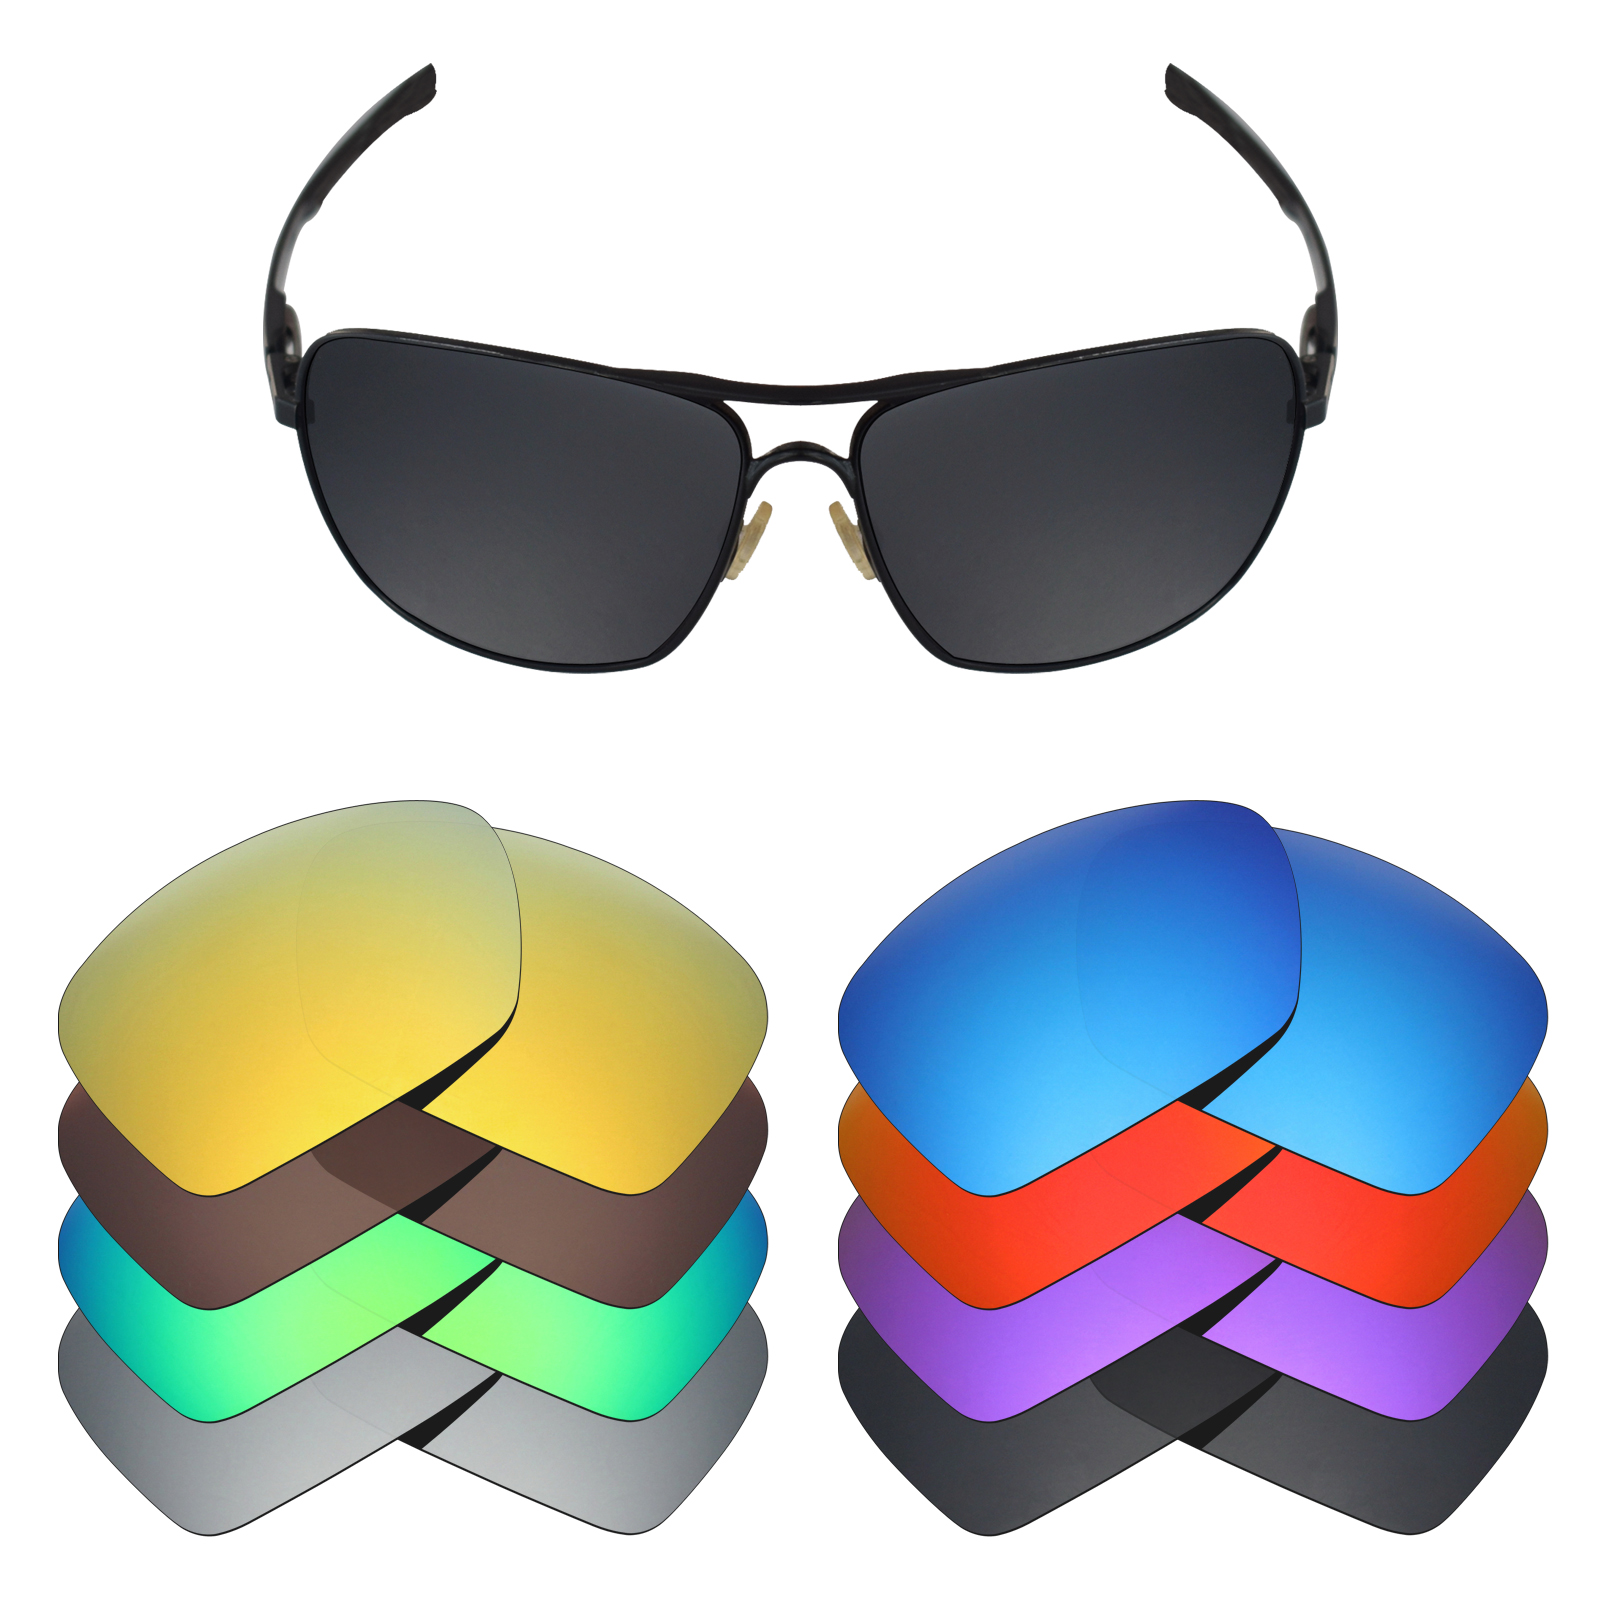 24580fd7d Details about Mryok Anti-Scratch Polarized Replacement Lens for-Oakley  Plaintiff Squared - Opt